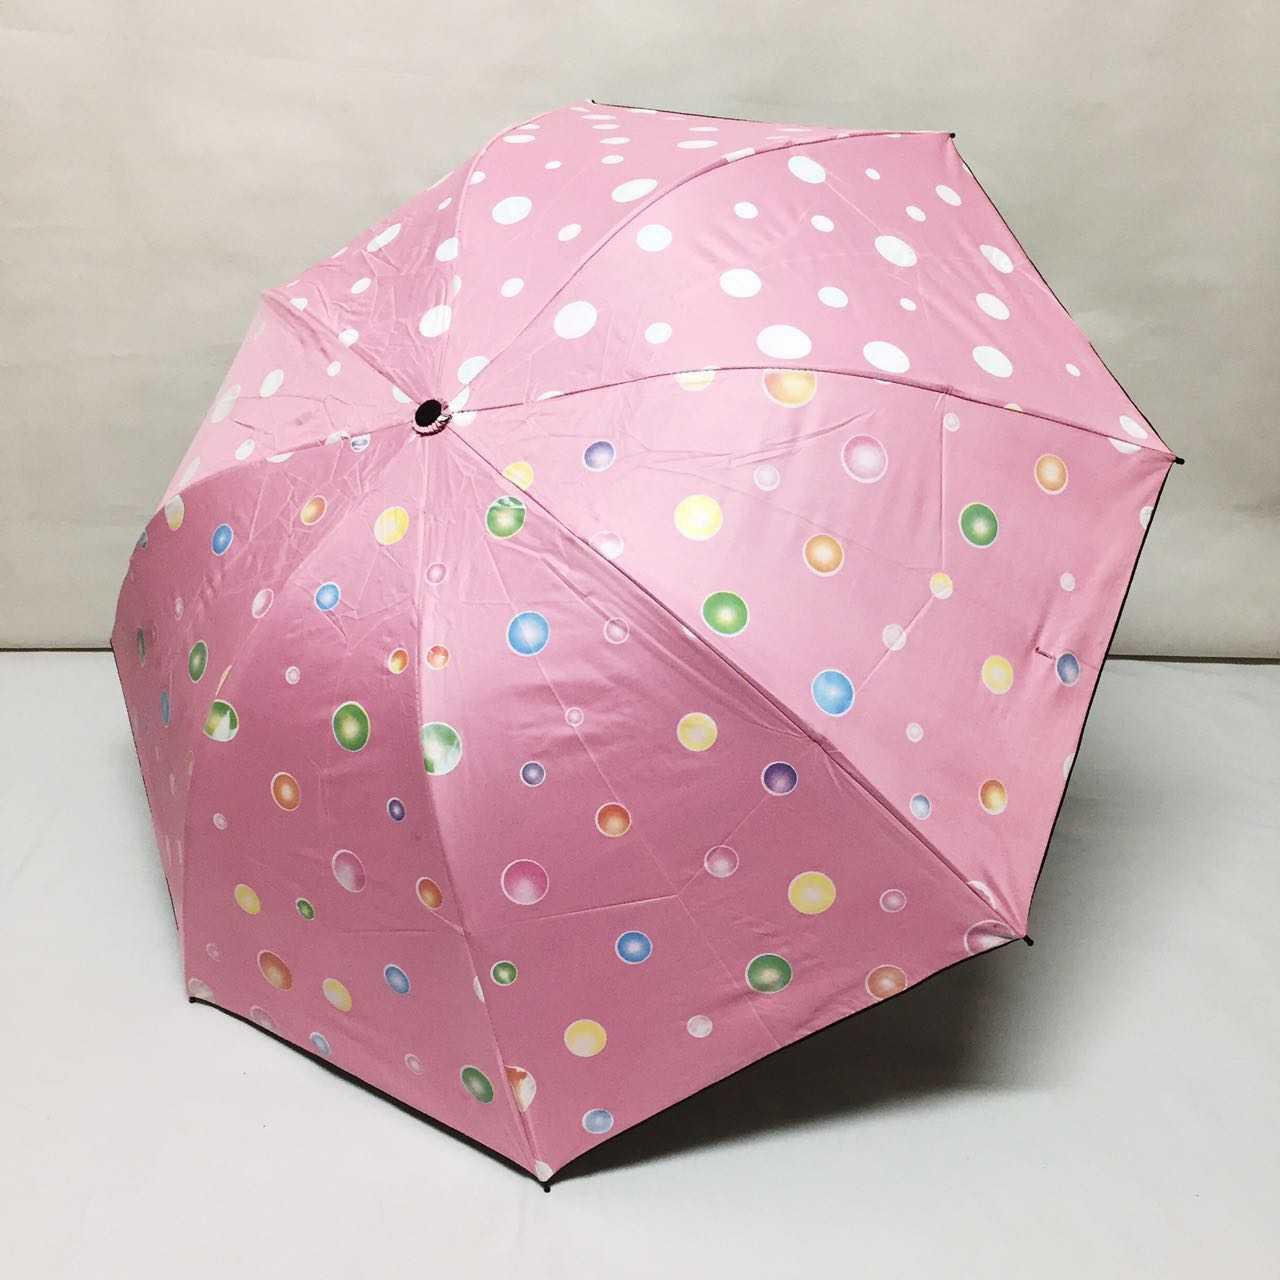 Buy Sell Cheapest Lipat 3d Best Quality Product Deals Payung Magic Polos 3 Big Small Polkadot 5973